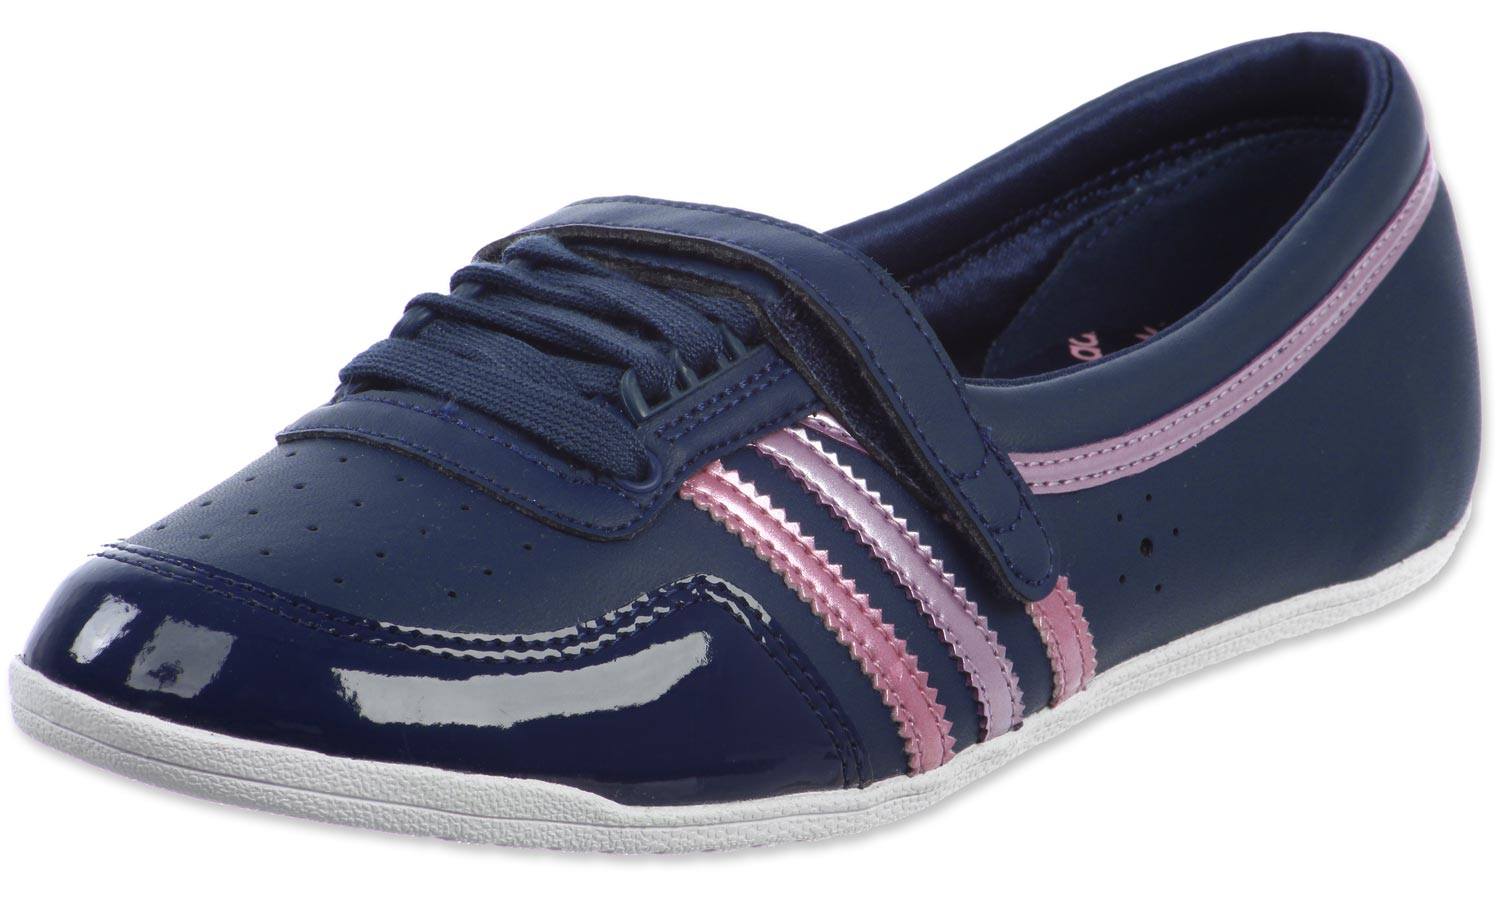 adidas concord round w shoes blue pink RXLULAM